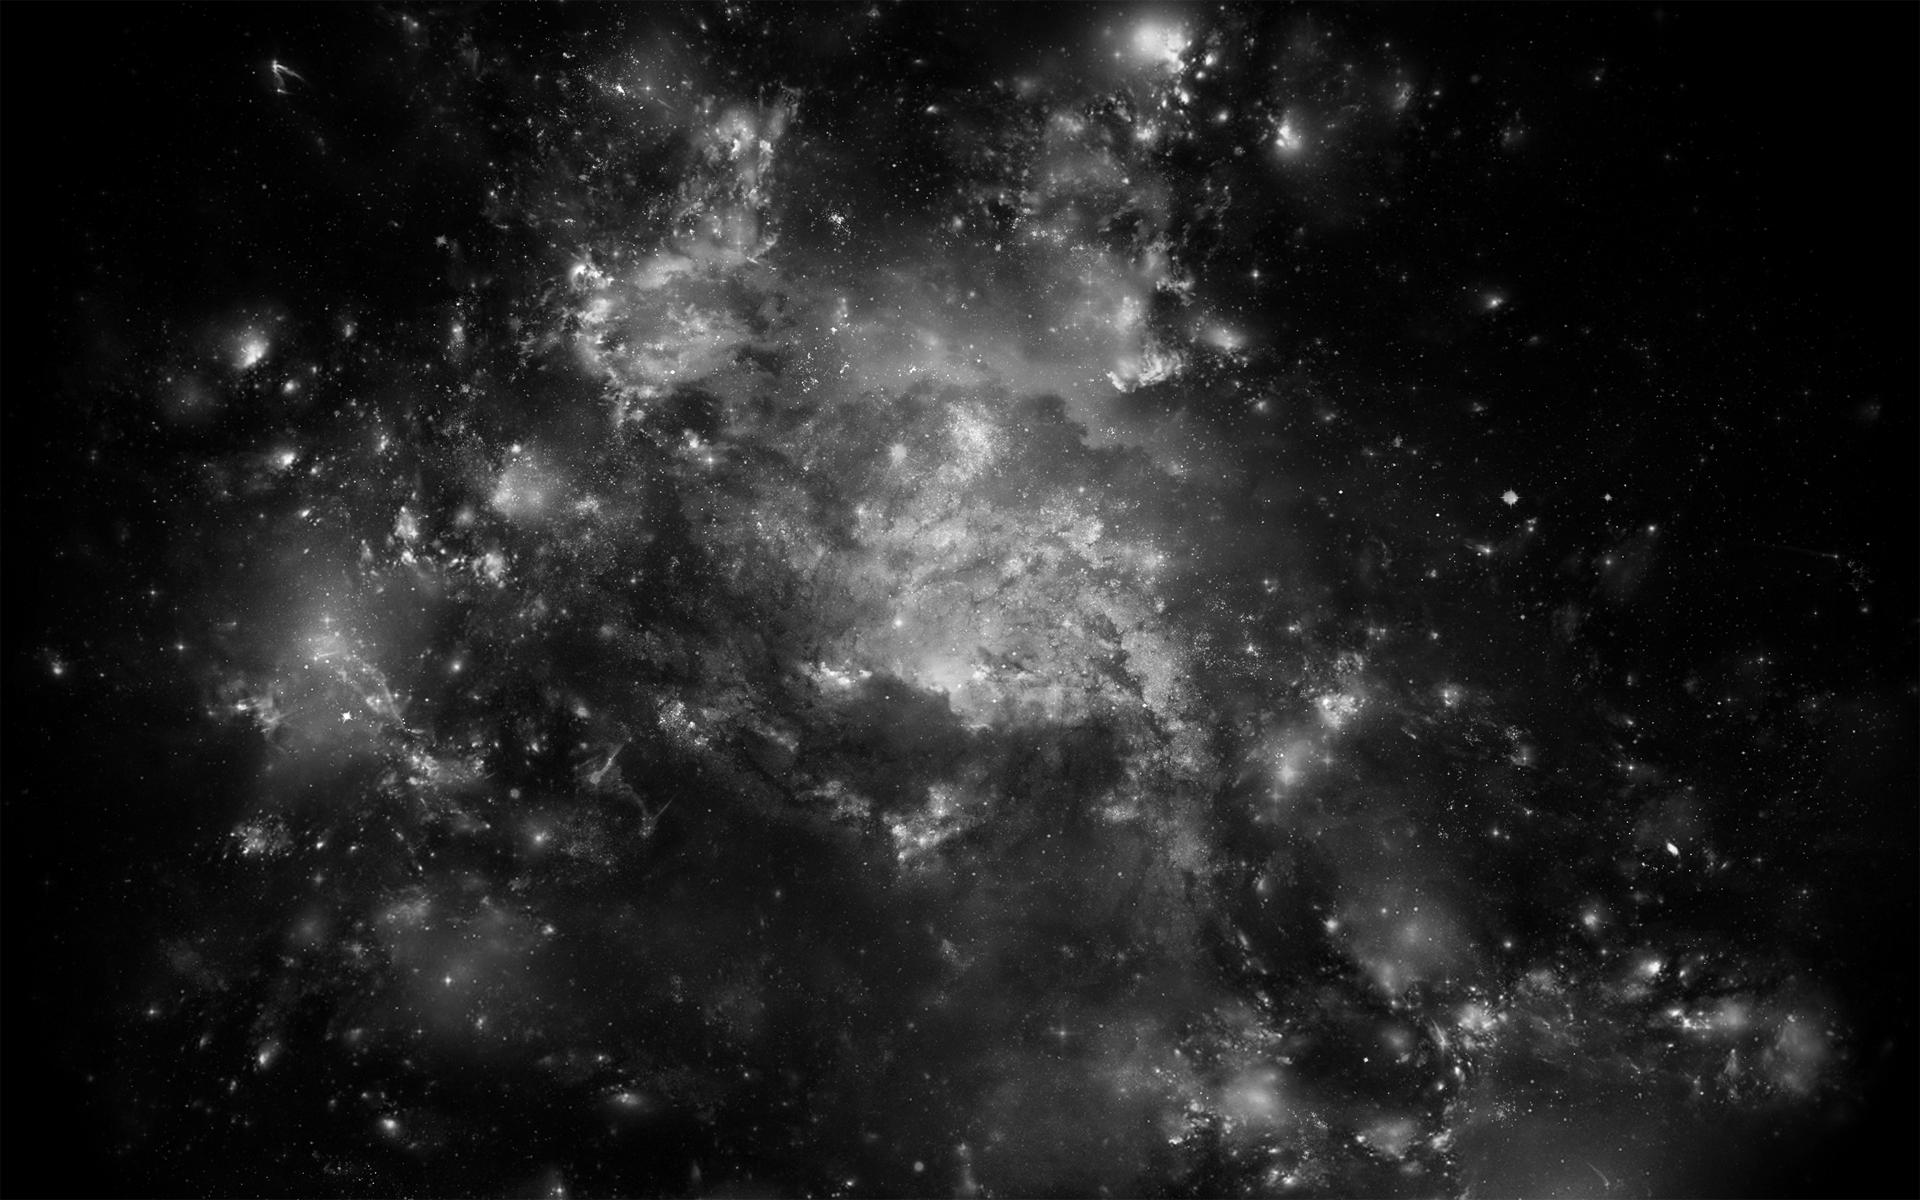 Black And White Space Wallpaper Posted By Samantha Johnson